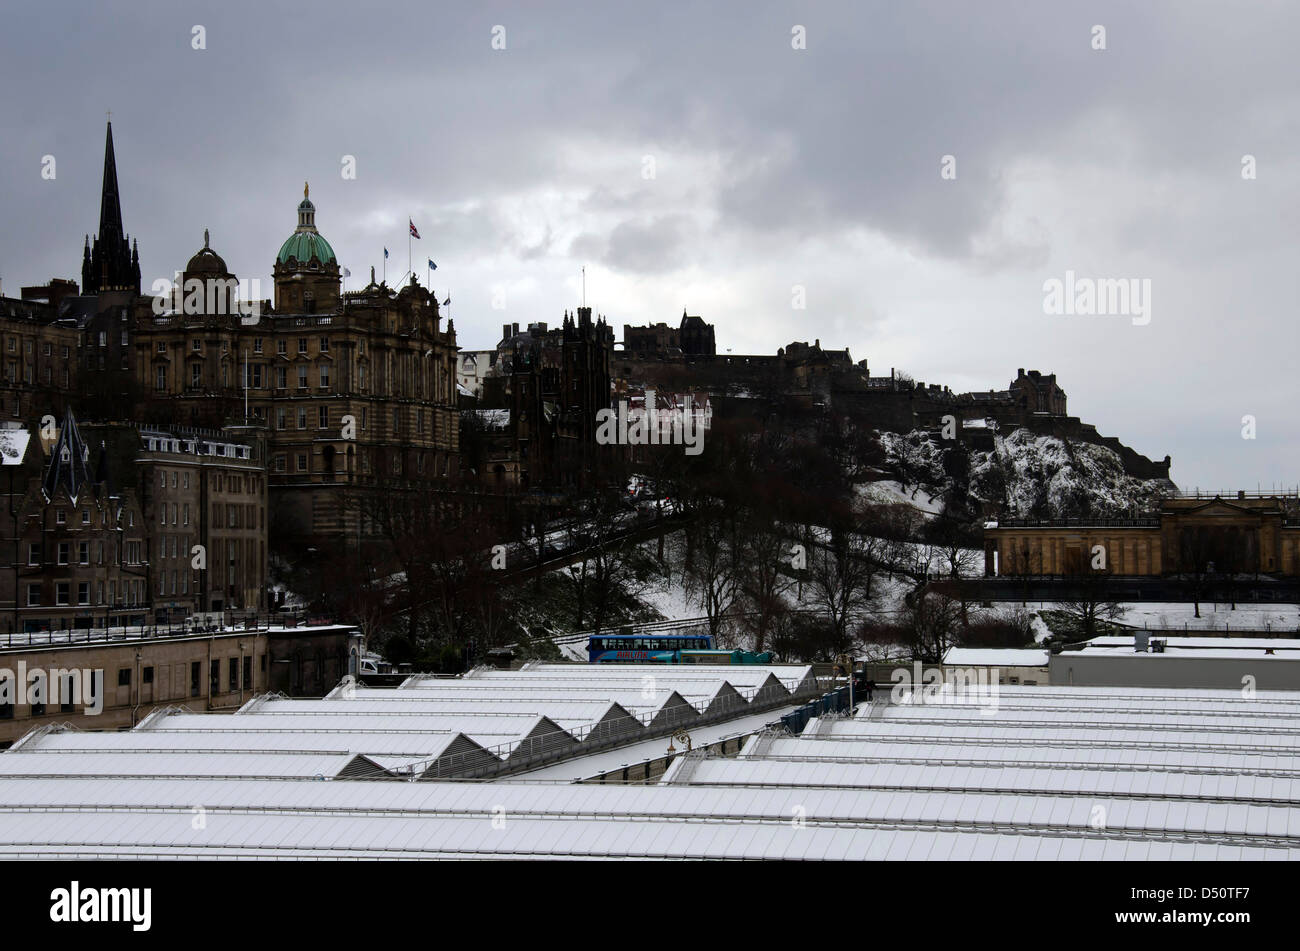 Edinburgh in the snow: looking over the roof of the snow-covered Waverley Station towards the Castle. - Stock Image